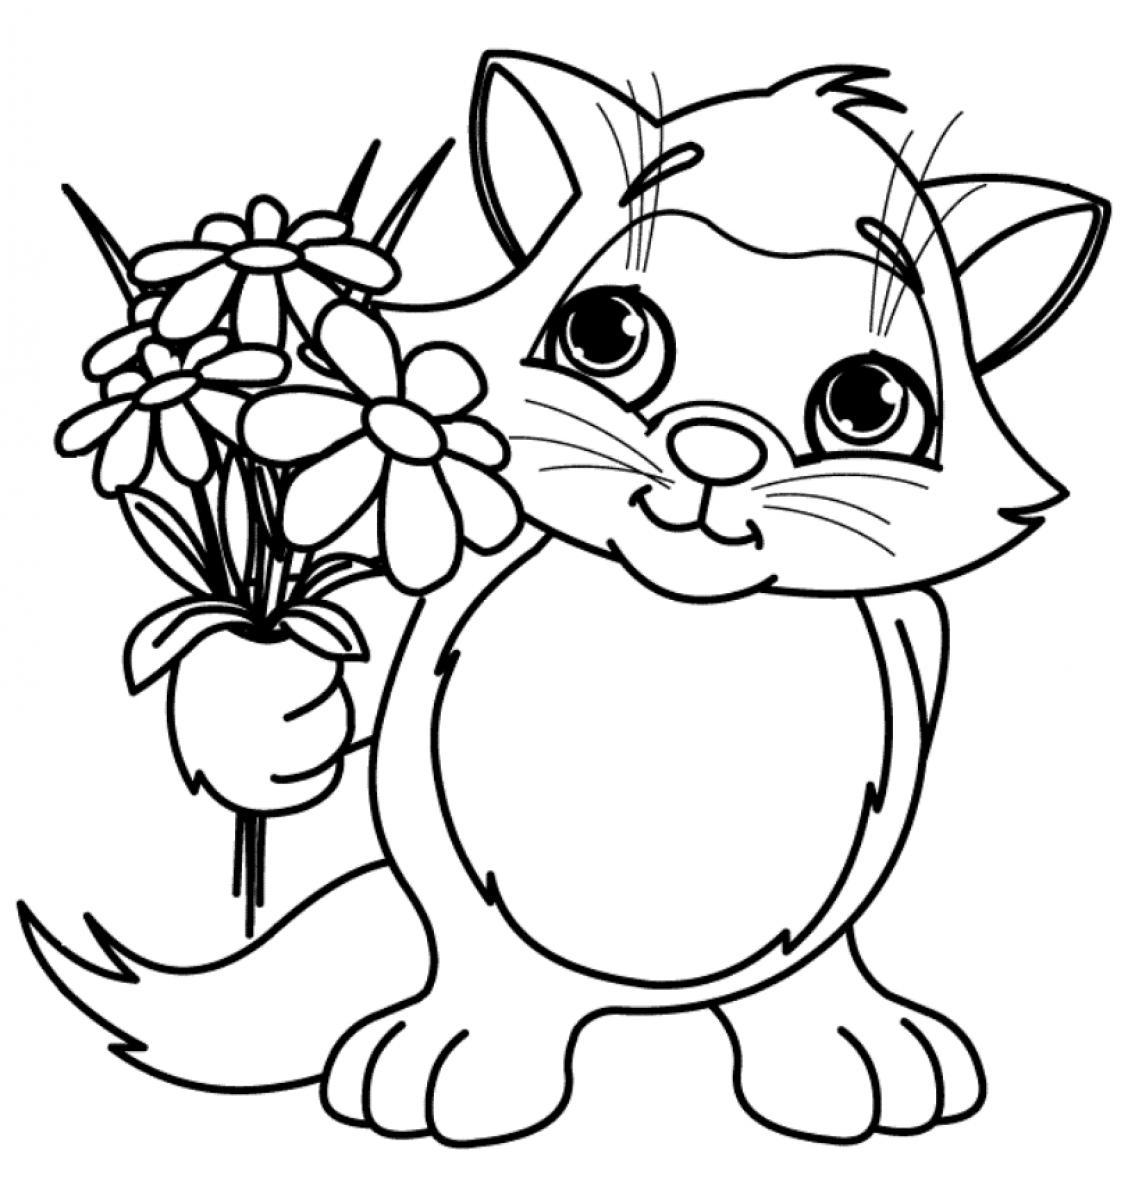 coloring pictures of a flower beautiful tulip flower coloring page kids play color flower a pictures coloring of